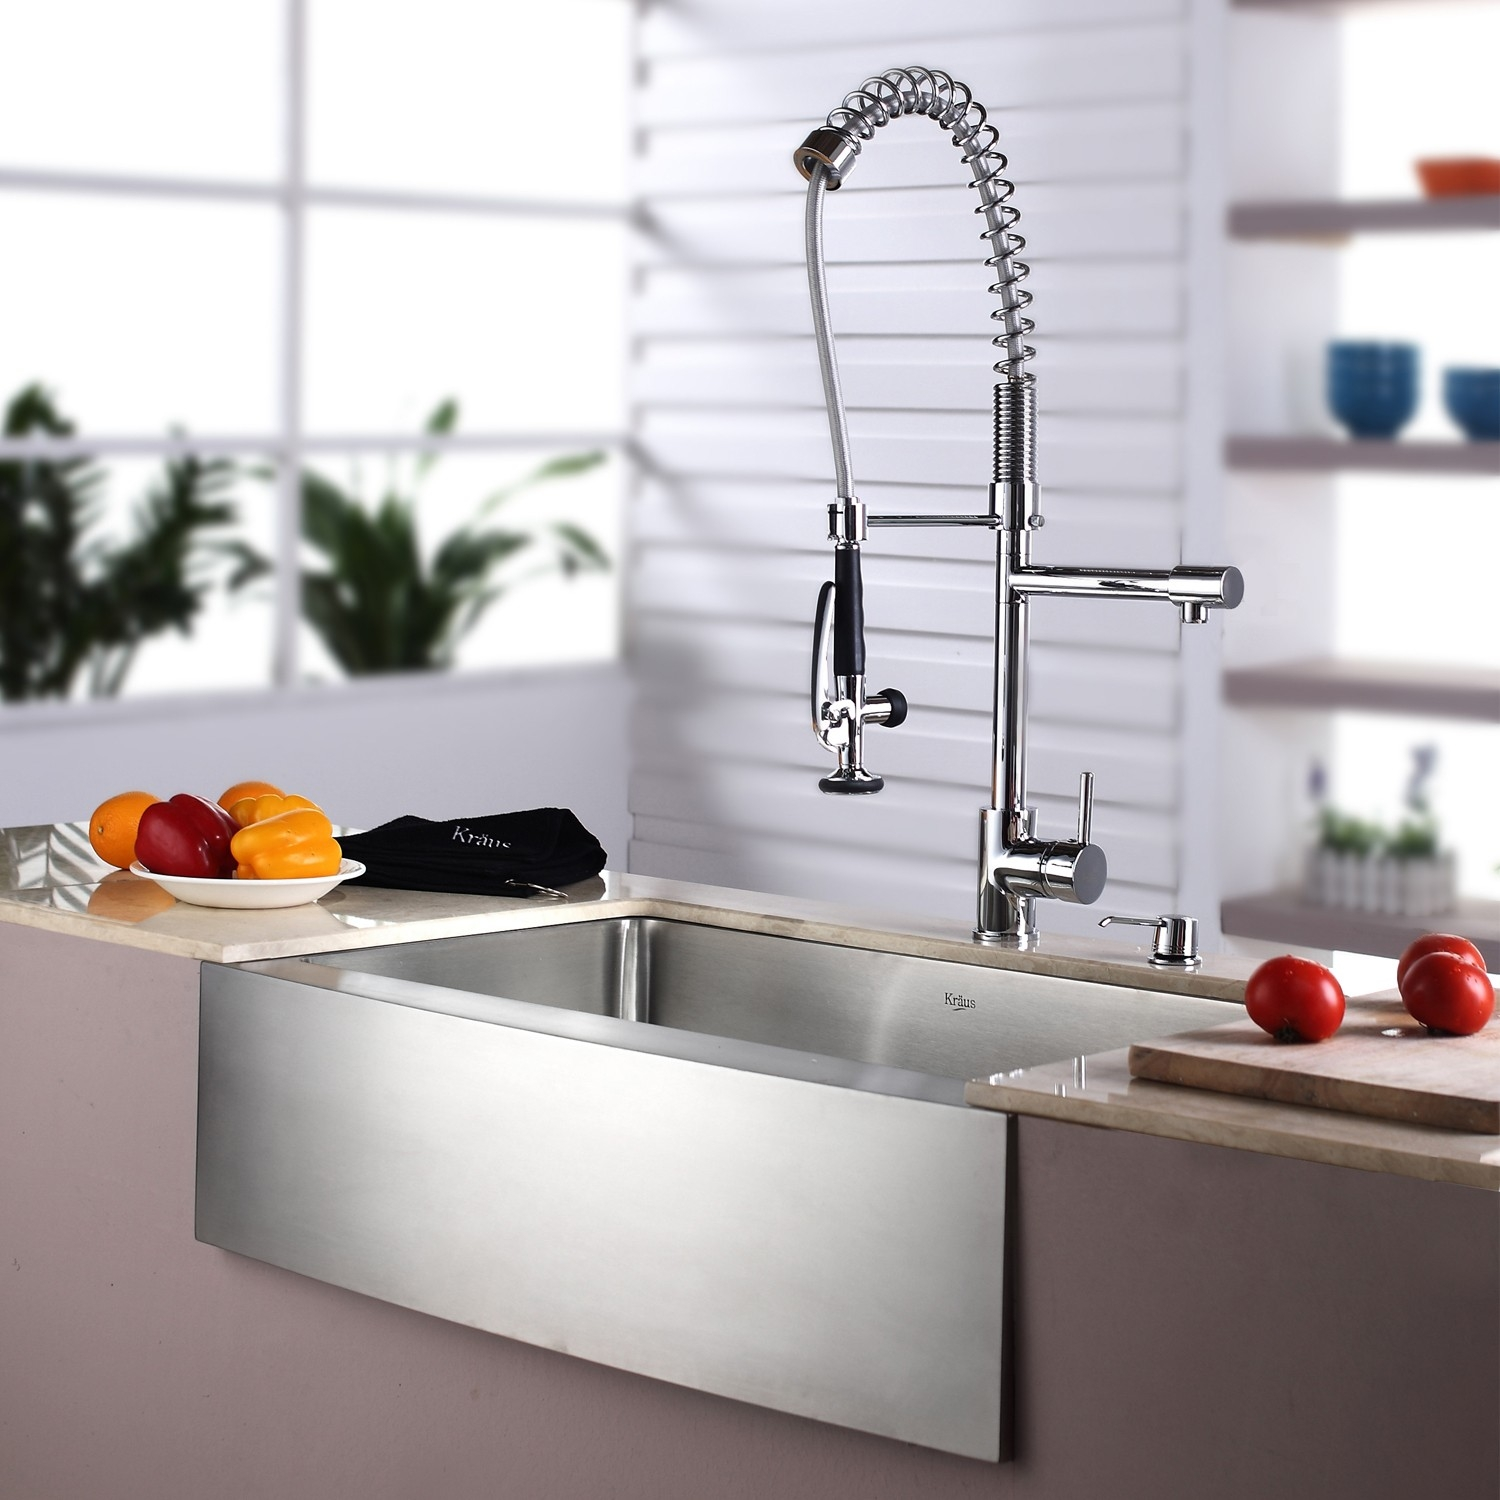 bathroom faucet trends 2017 bathroom faucet trends 2017 2017 modern kitchen trends forecast 1500 x 1500 jpeg